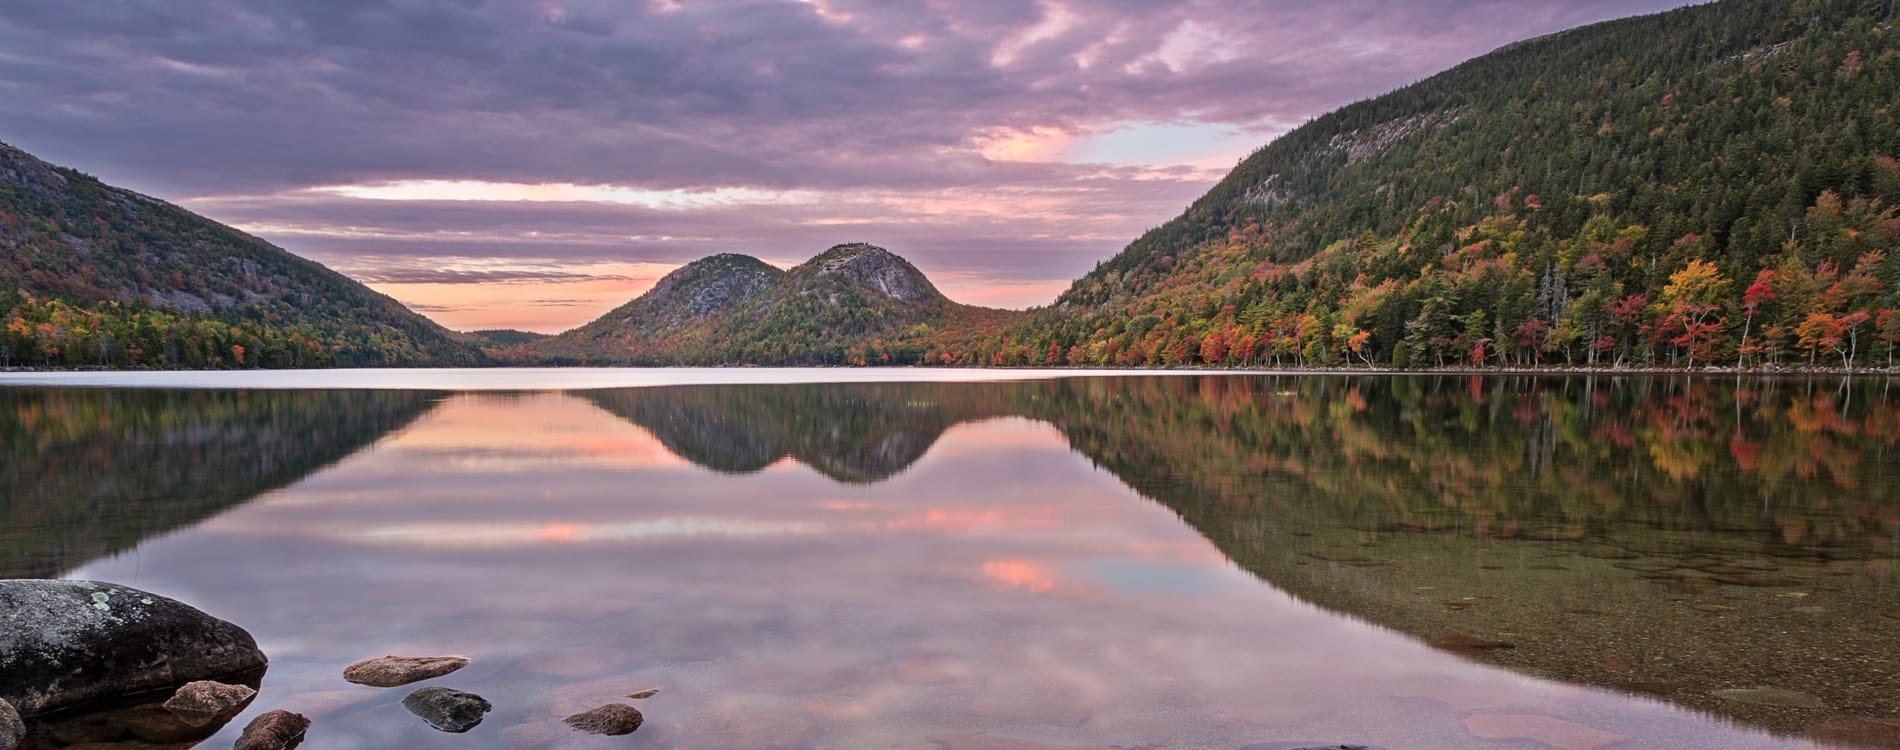 Acadia National Park - Sunset on Jordan Pond